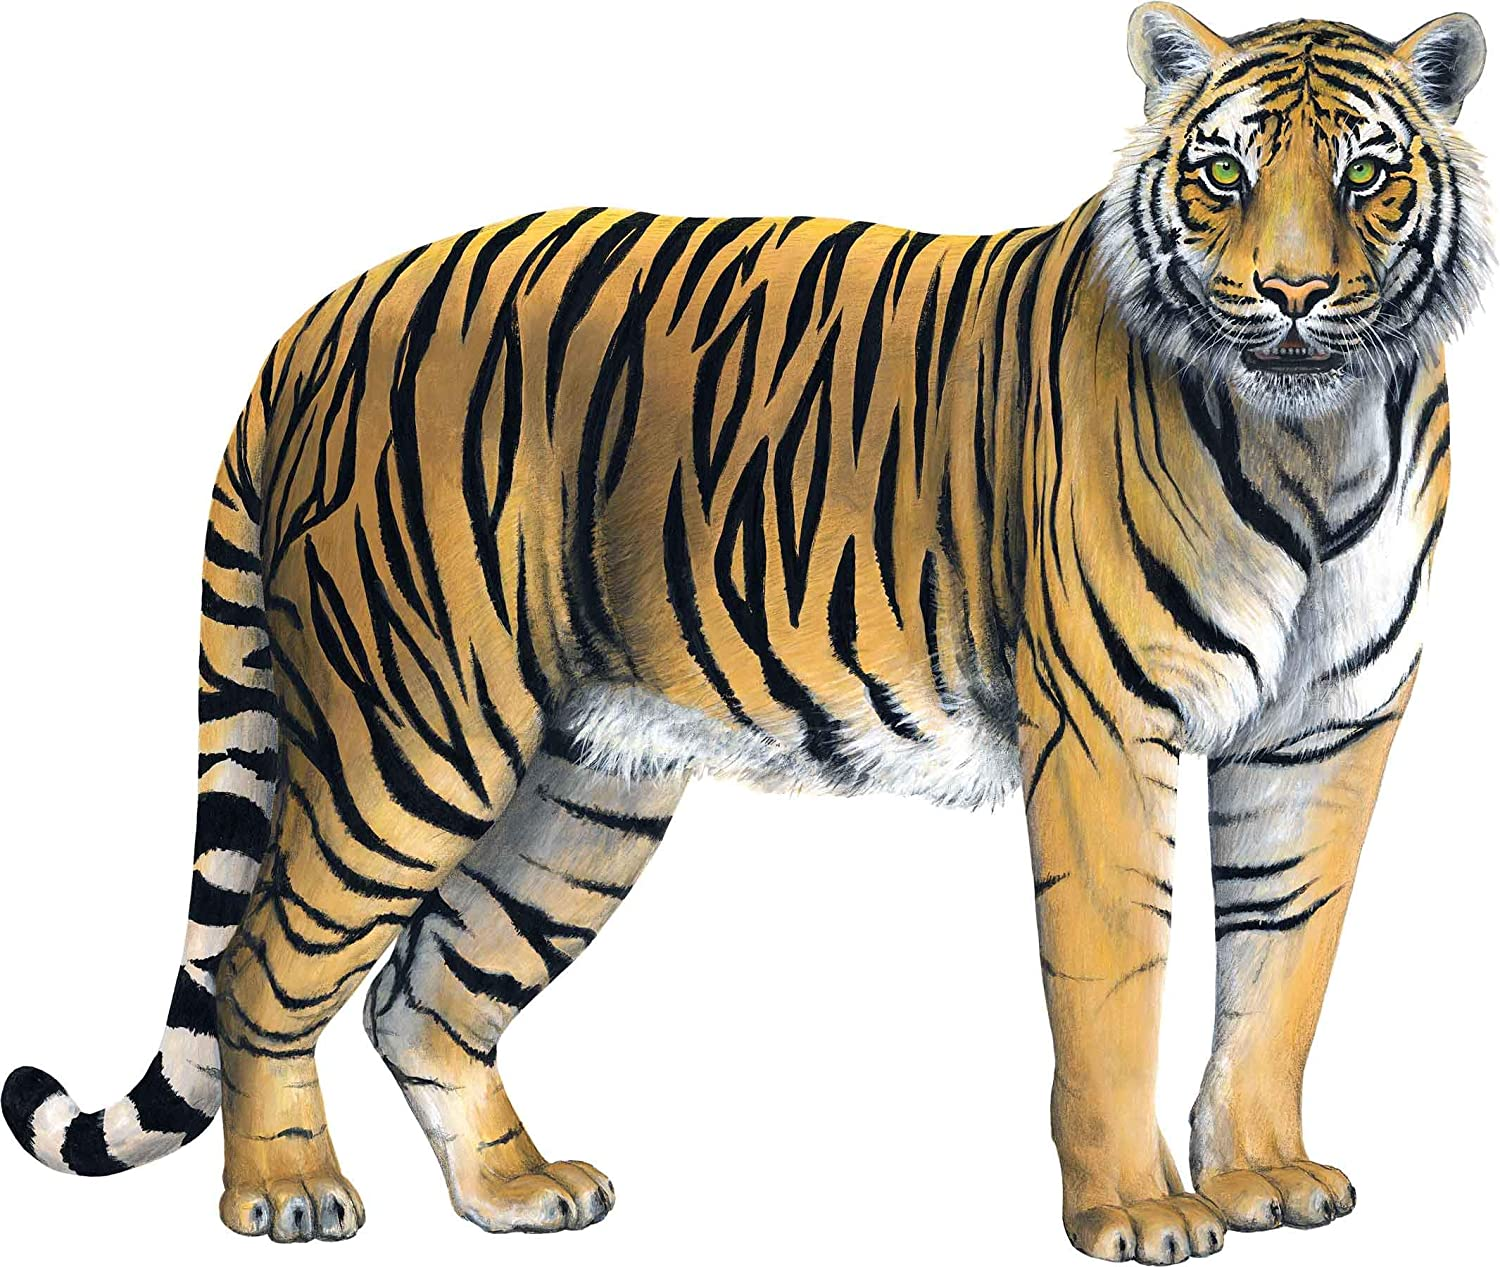 Walls of the Wild Tiger Wall Decal (38 in. X 32 in.)